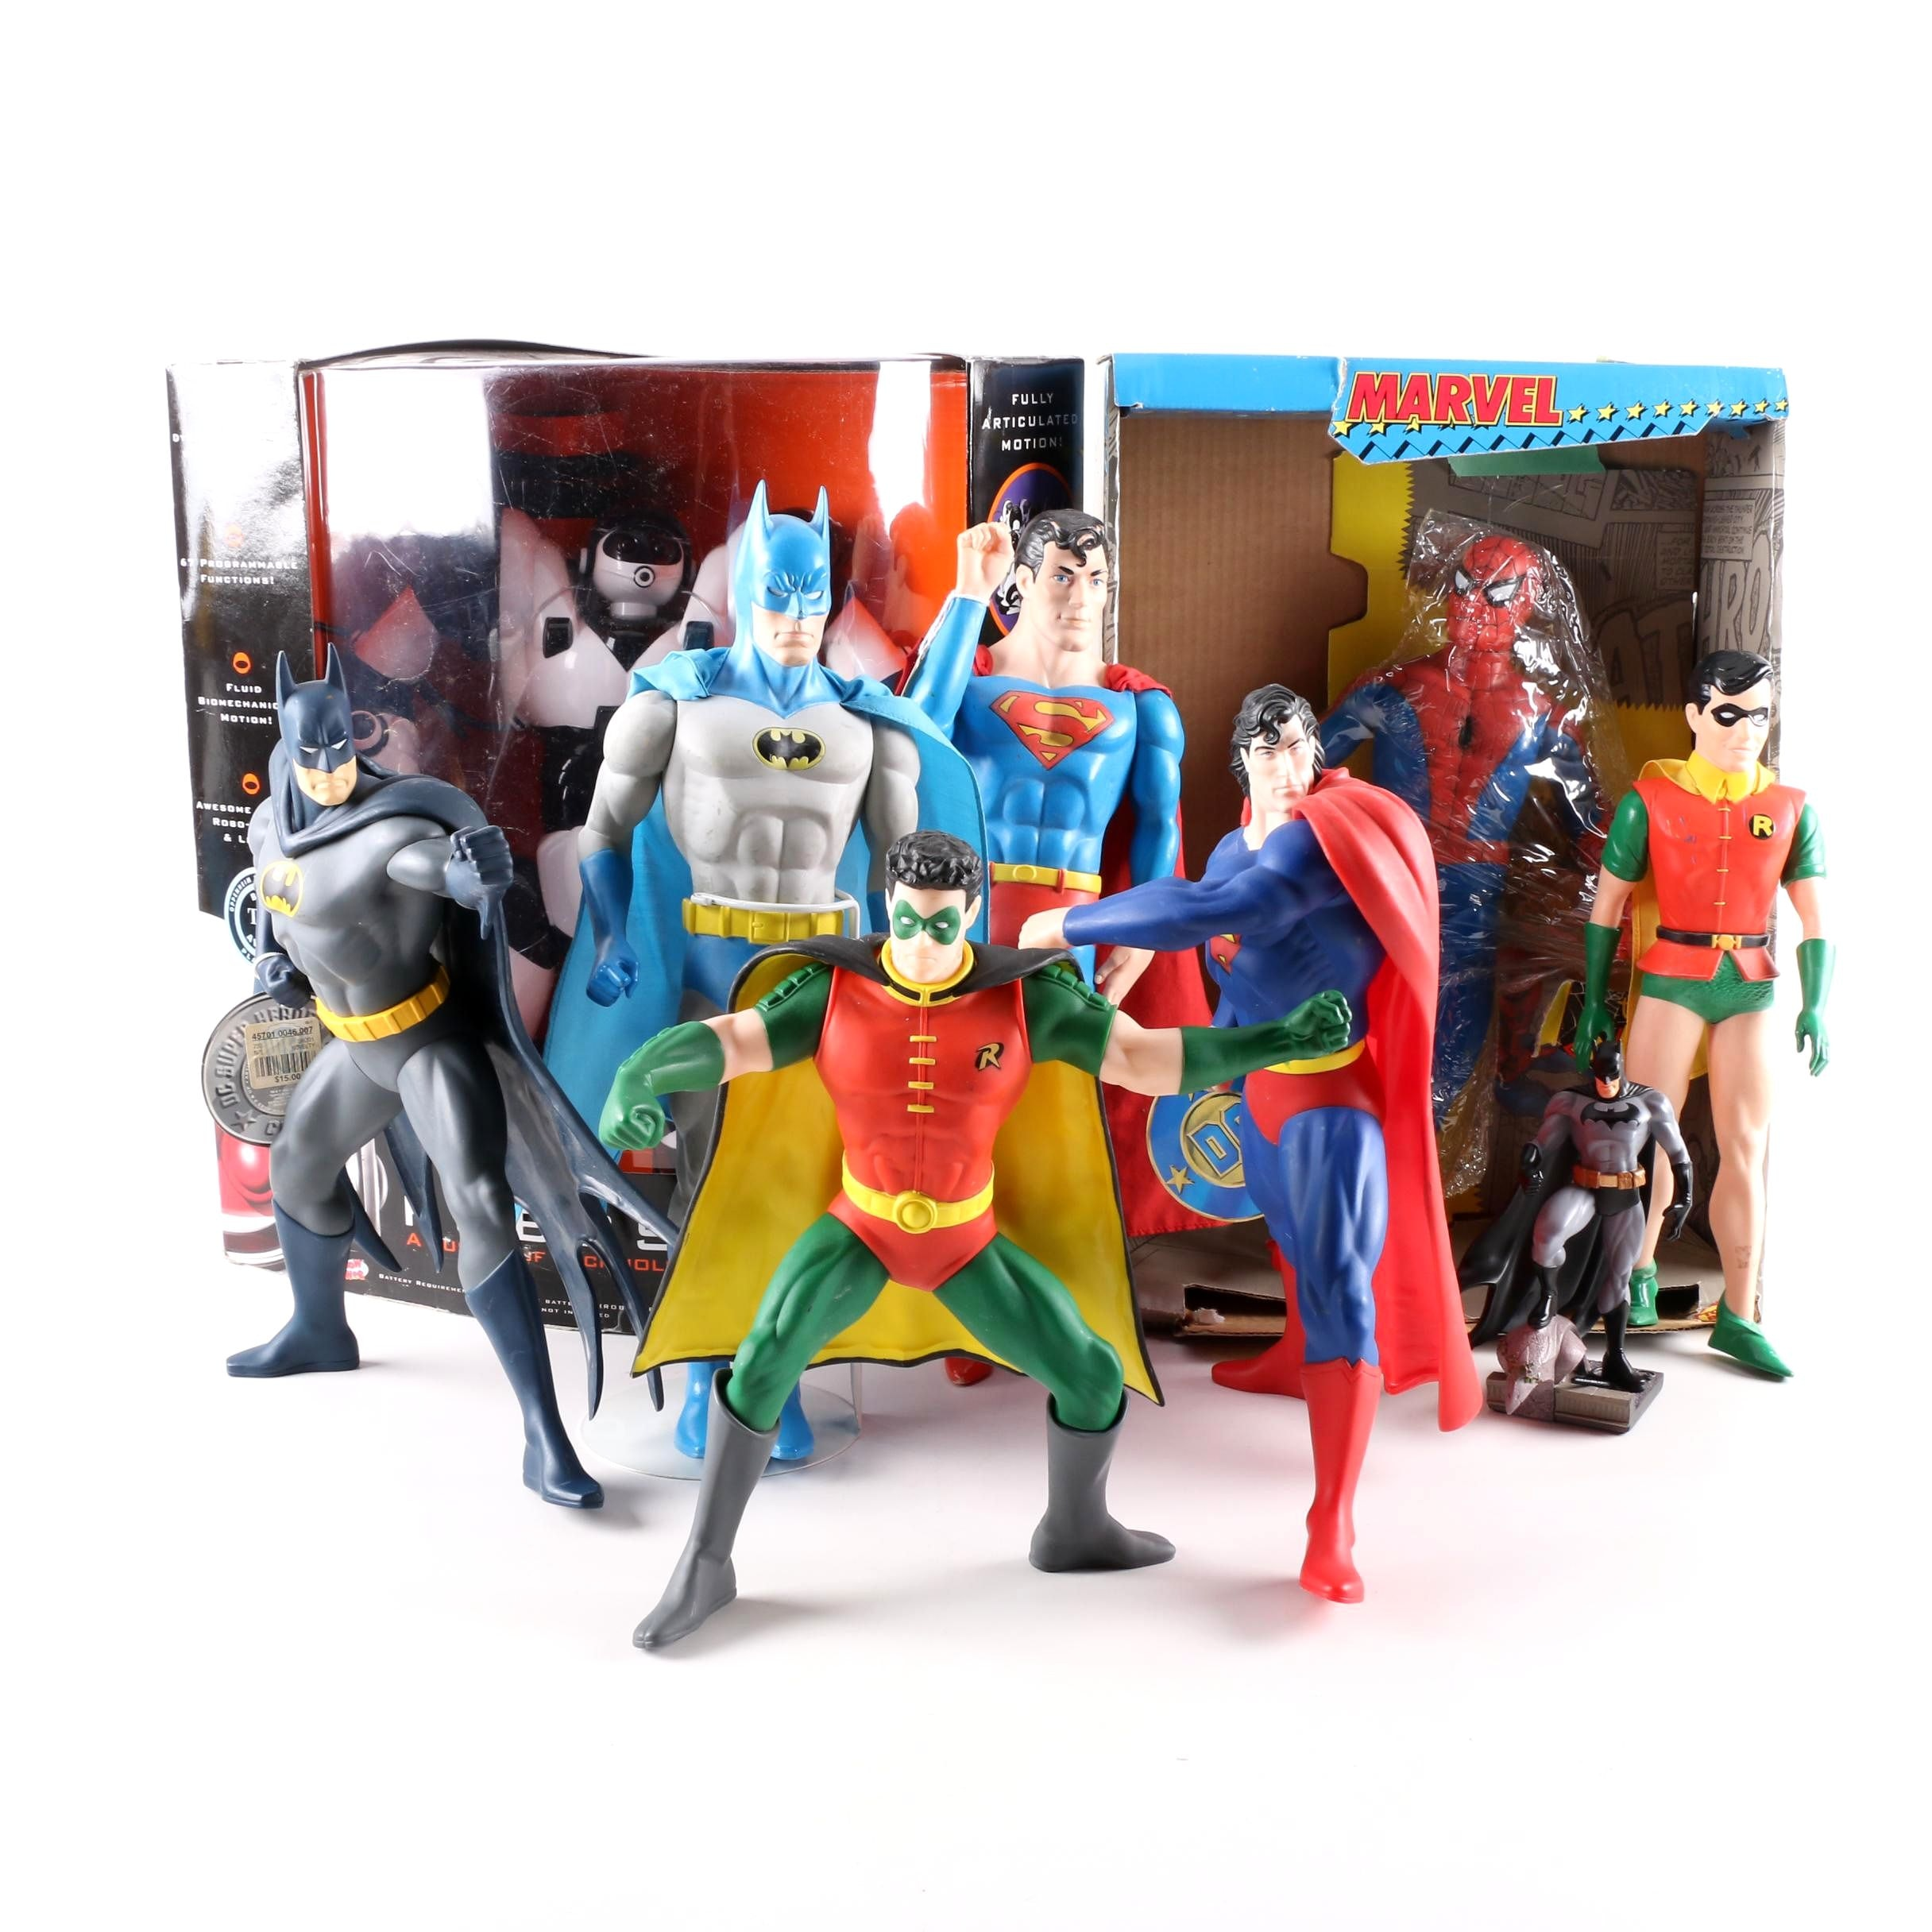 Marvel and DC Action Figures and RoboSapien Toy